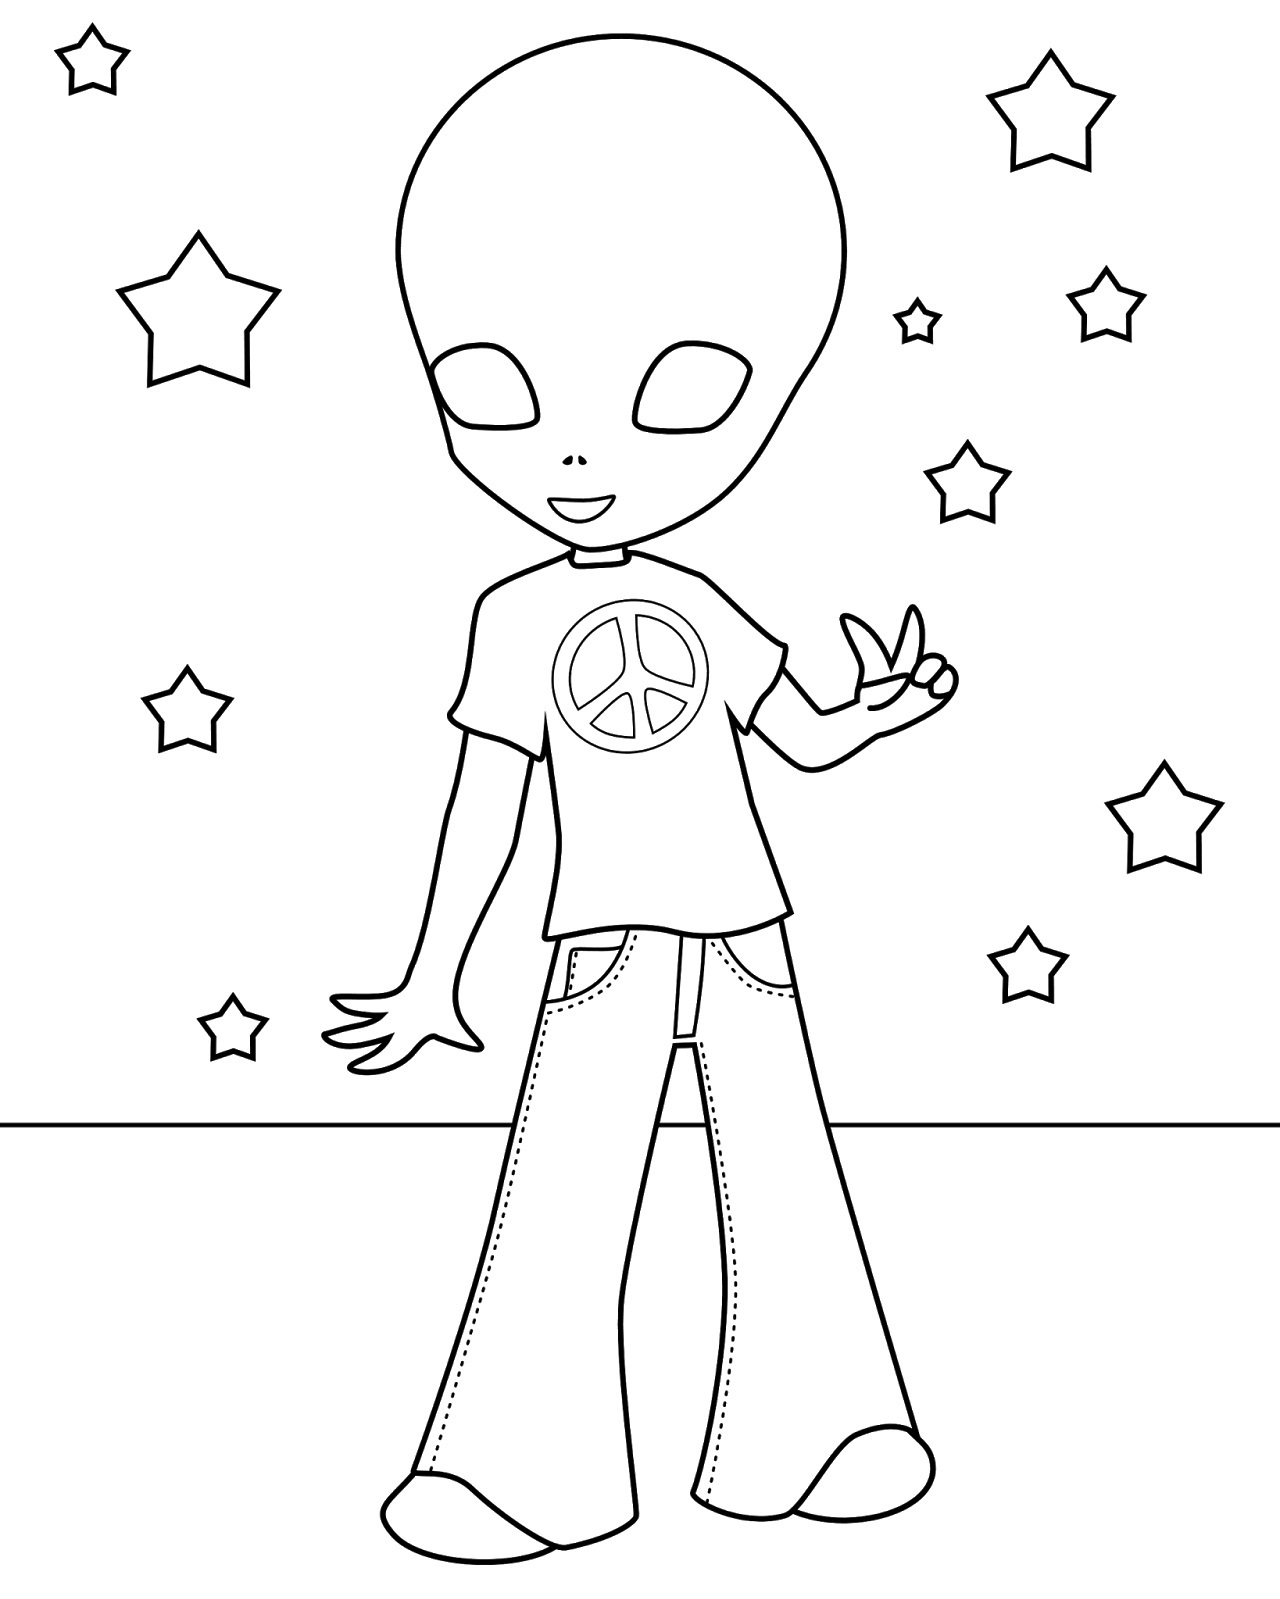 Free Printable Alien Coloring Pages For Kids Aliens Coloring Pages